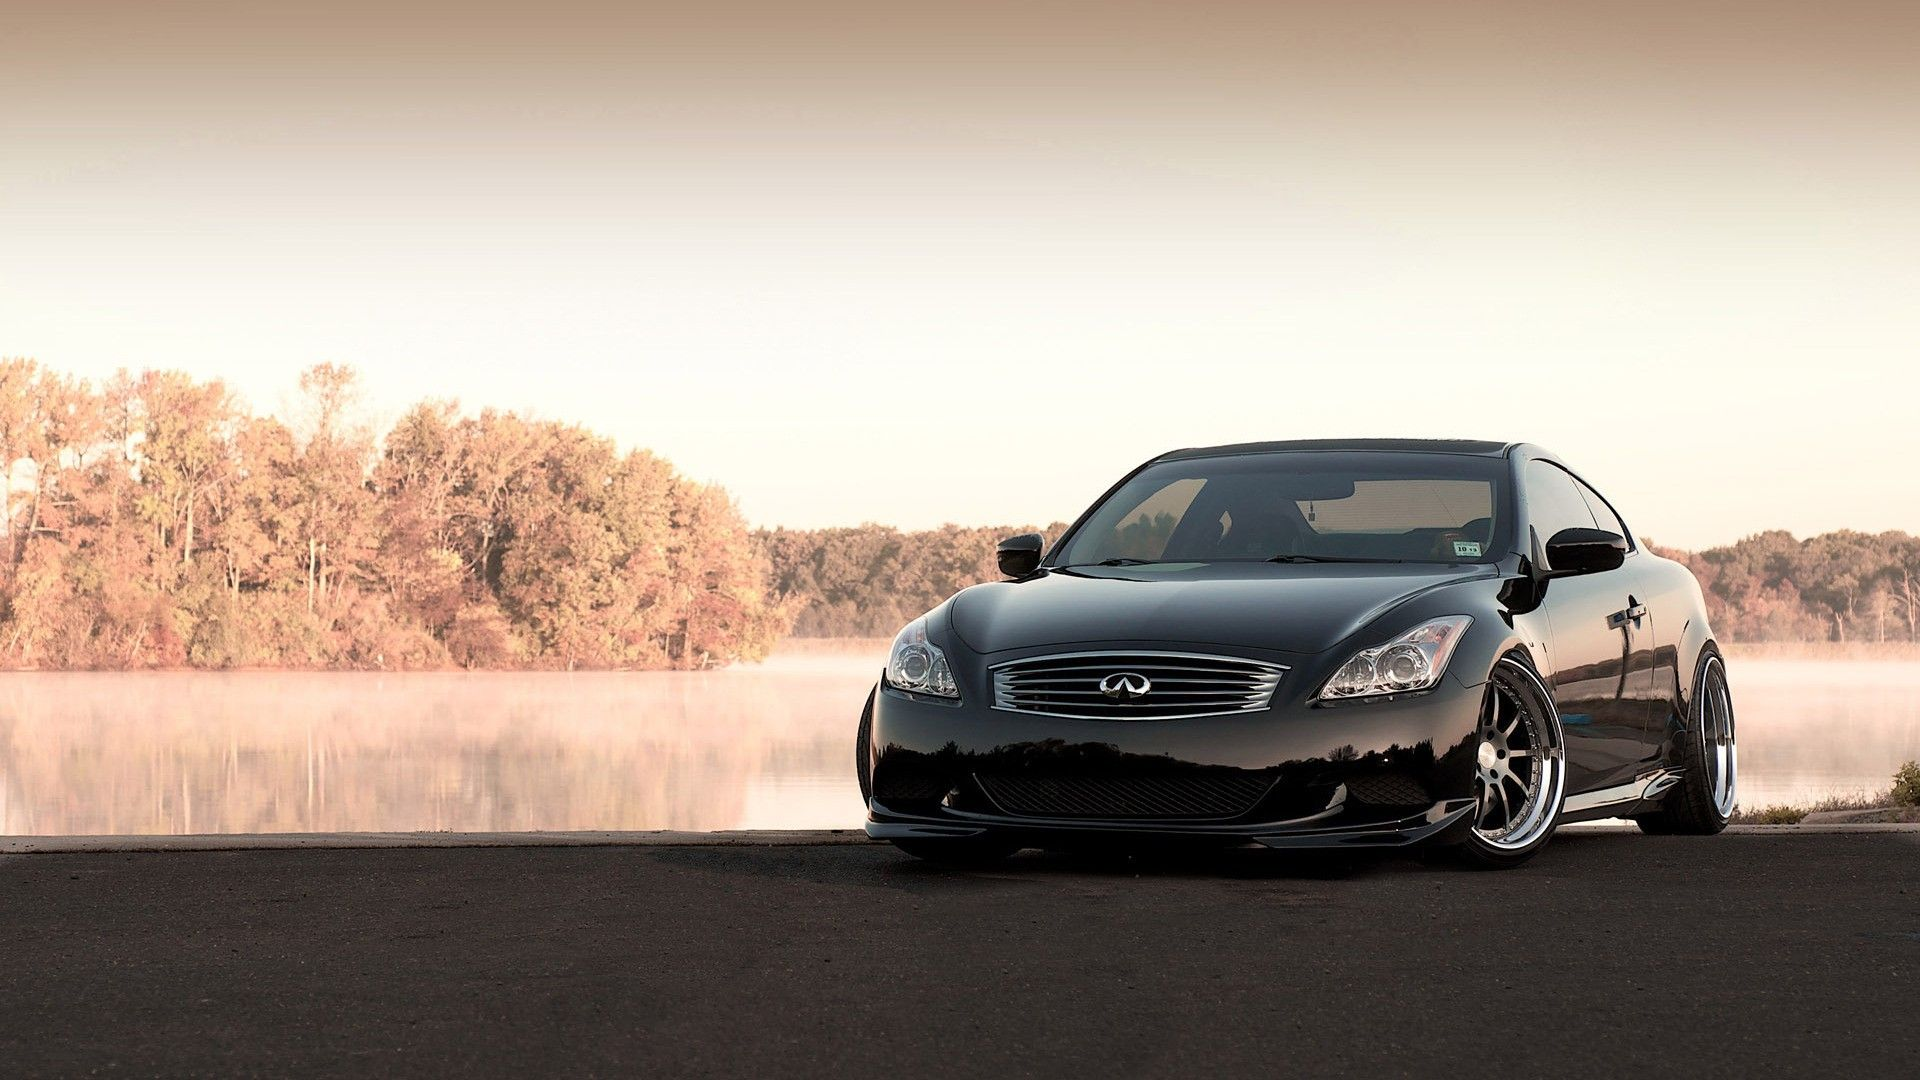 Pinned Onto Latest Infiniti Cars Board In Category